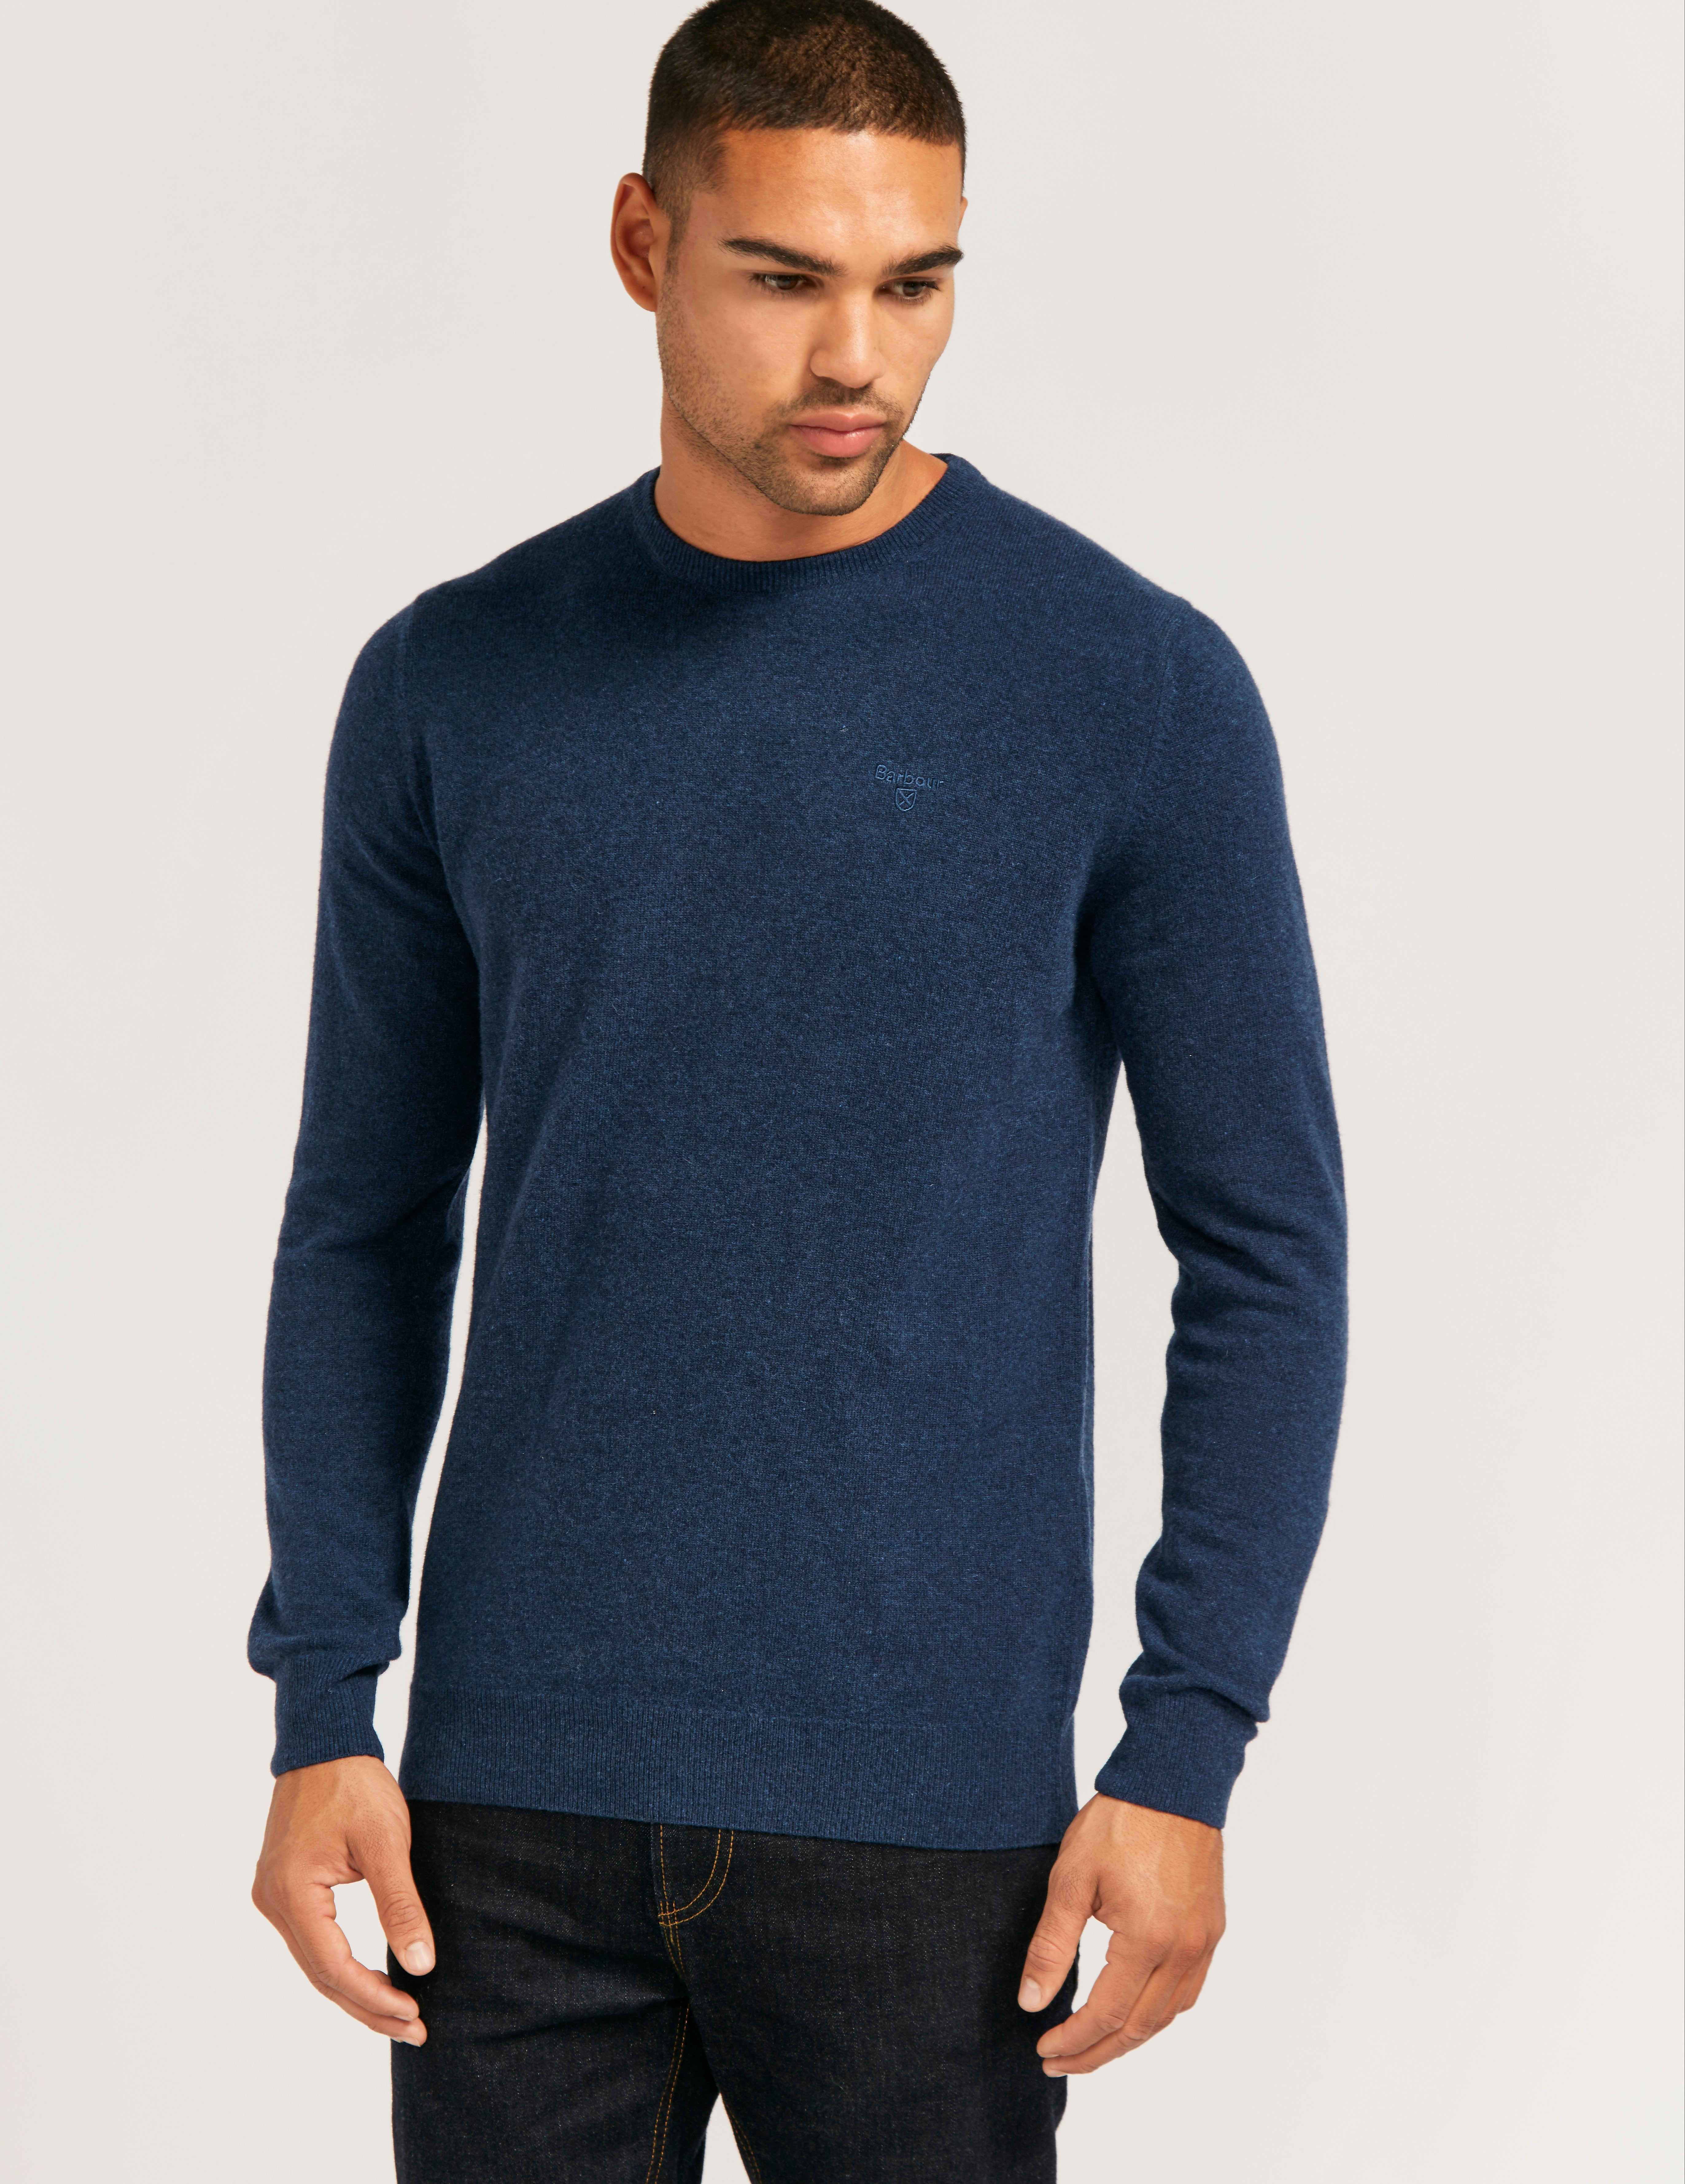 Barbour Wool Crew Knit